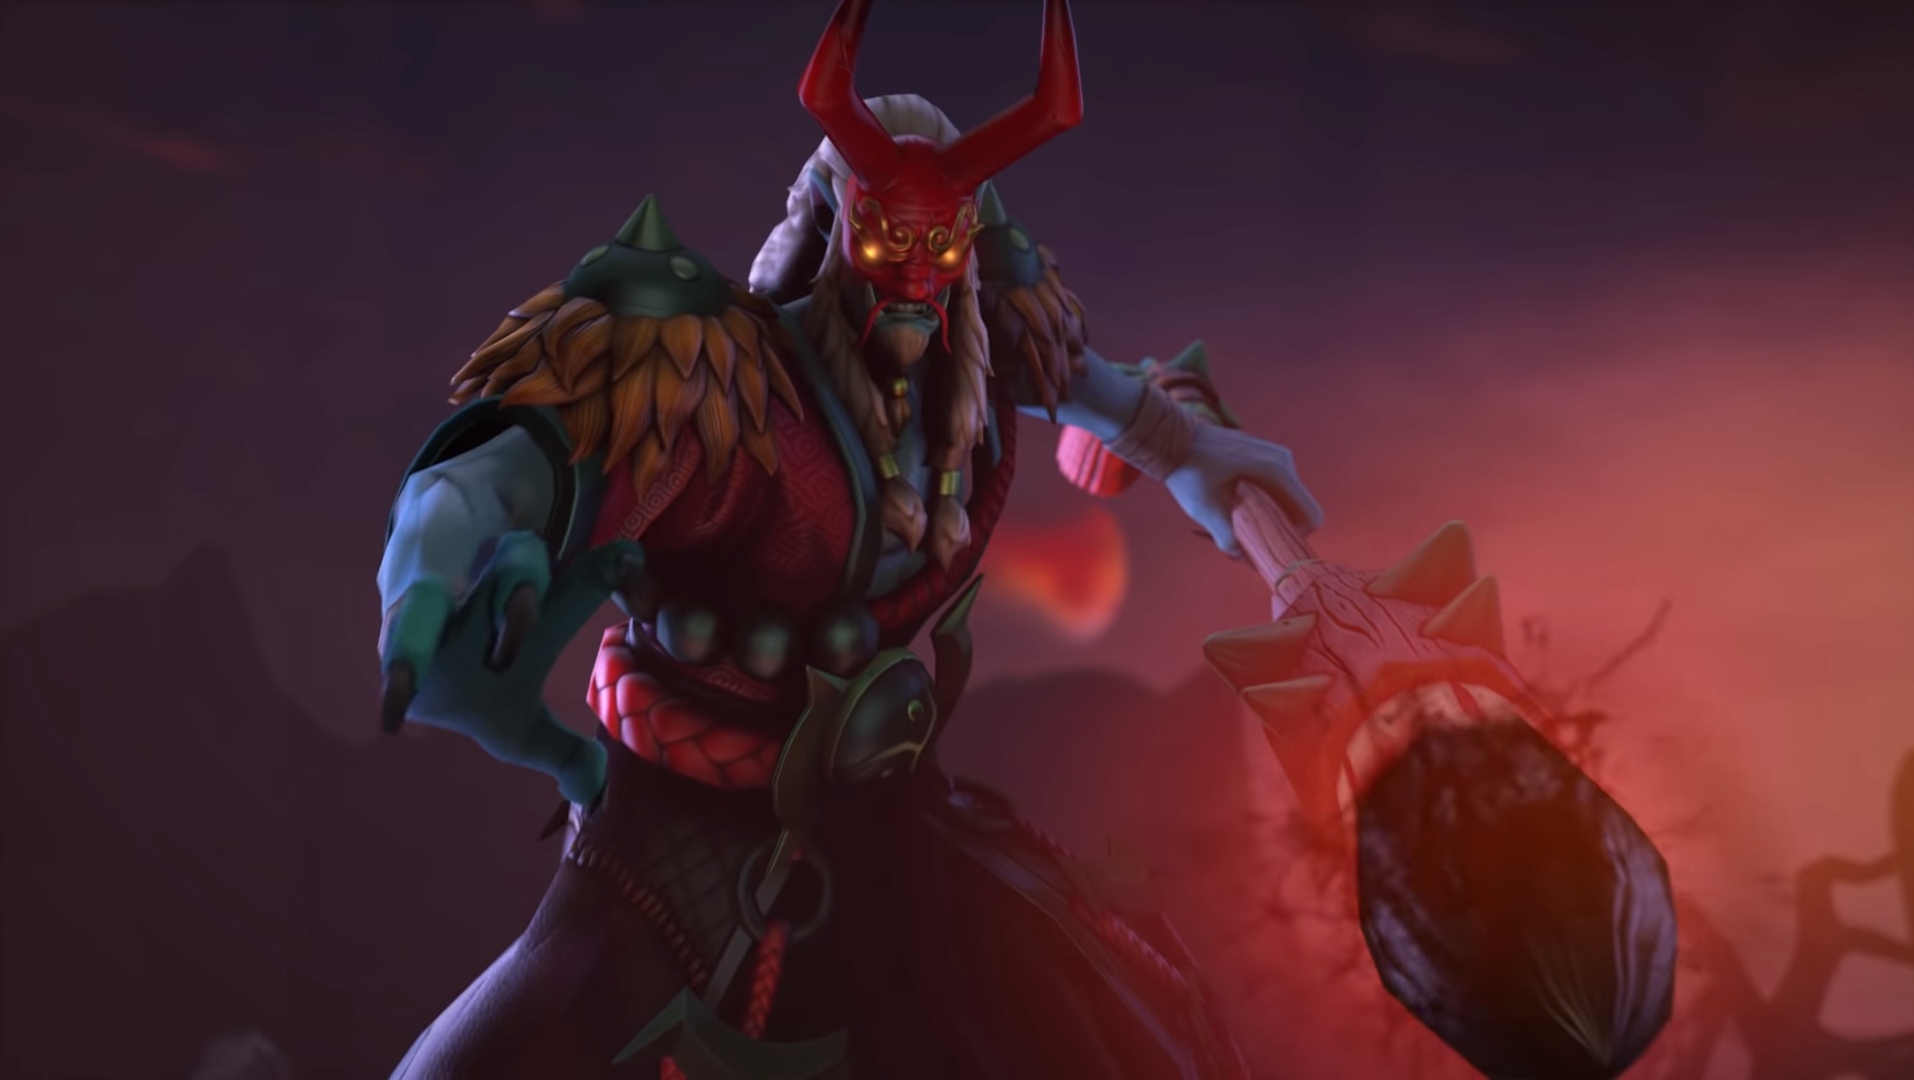 Dota 2 Announces Two New Heroes, One Playable Now - New Hero Dota 2 2018 , HD Wallpaper & Backgrounds